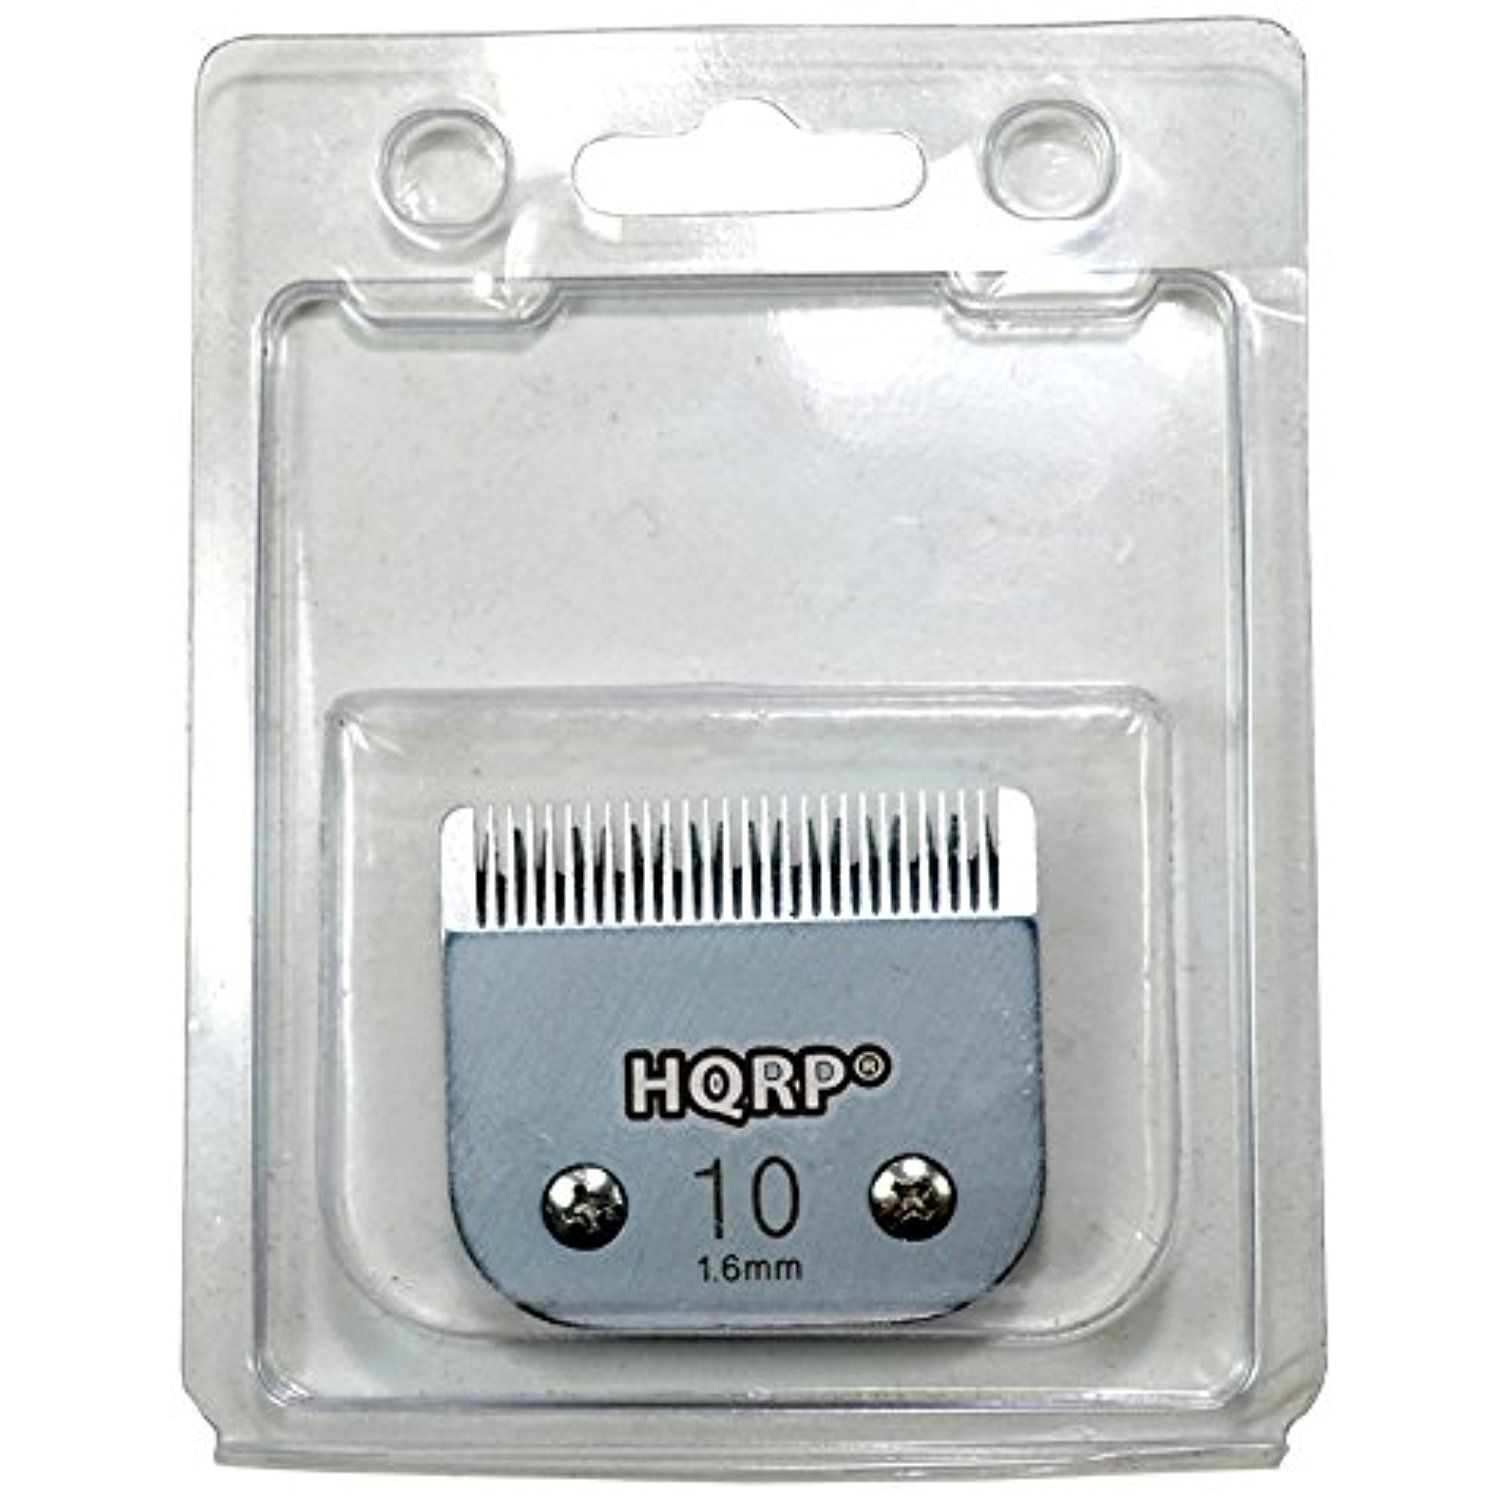 Hqrp Animal Clipper Blade For Oster Size 10 Cryogenx Professional 078919 046 005 78919 046 Pet Grooming Hqrp Coas Pet Grooming Dog Grooming Dog Training Pads